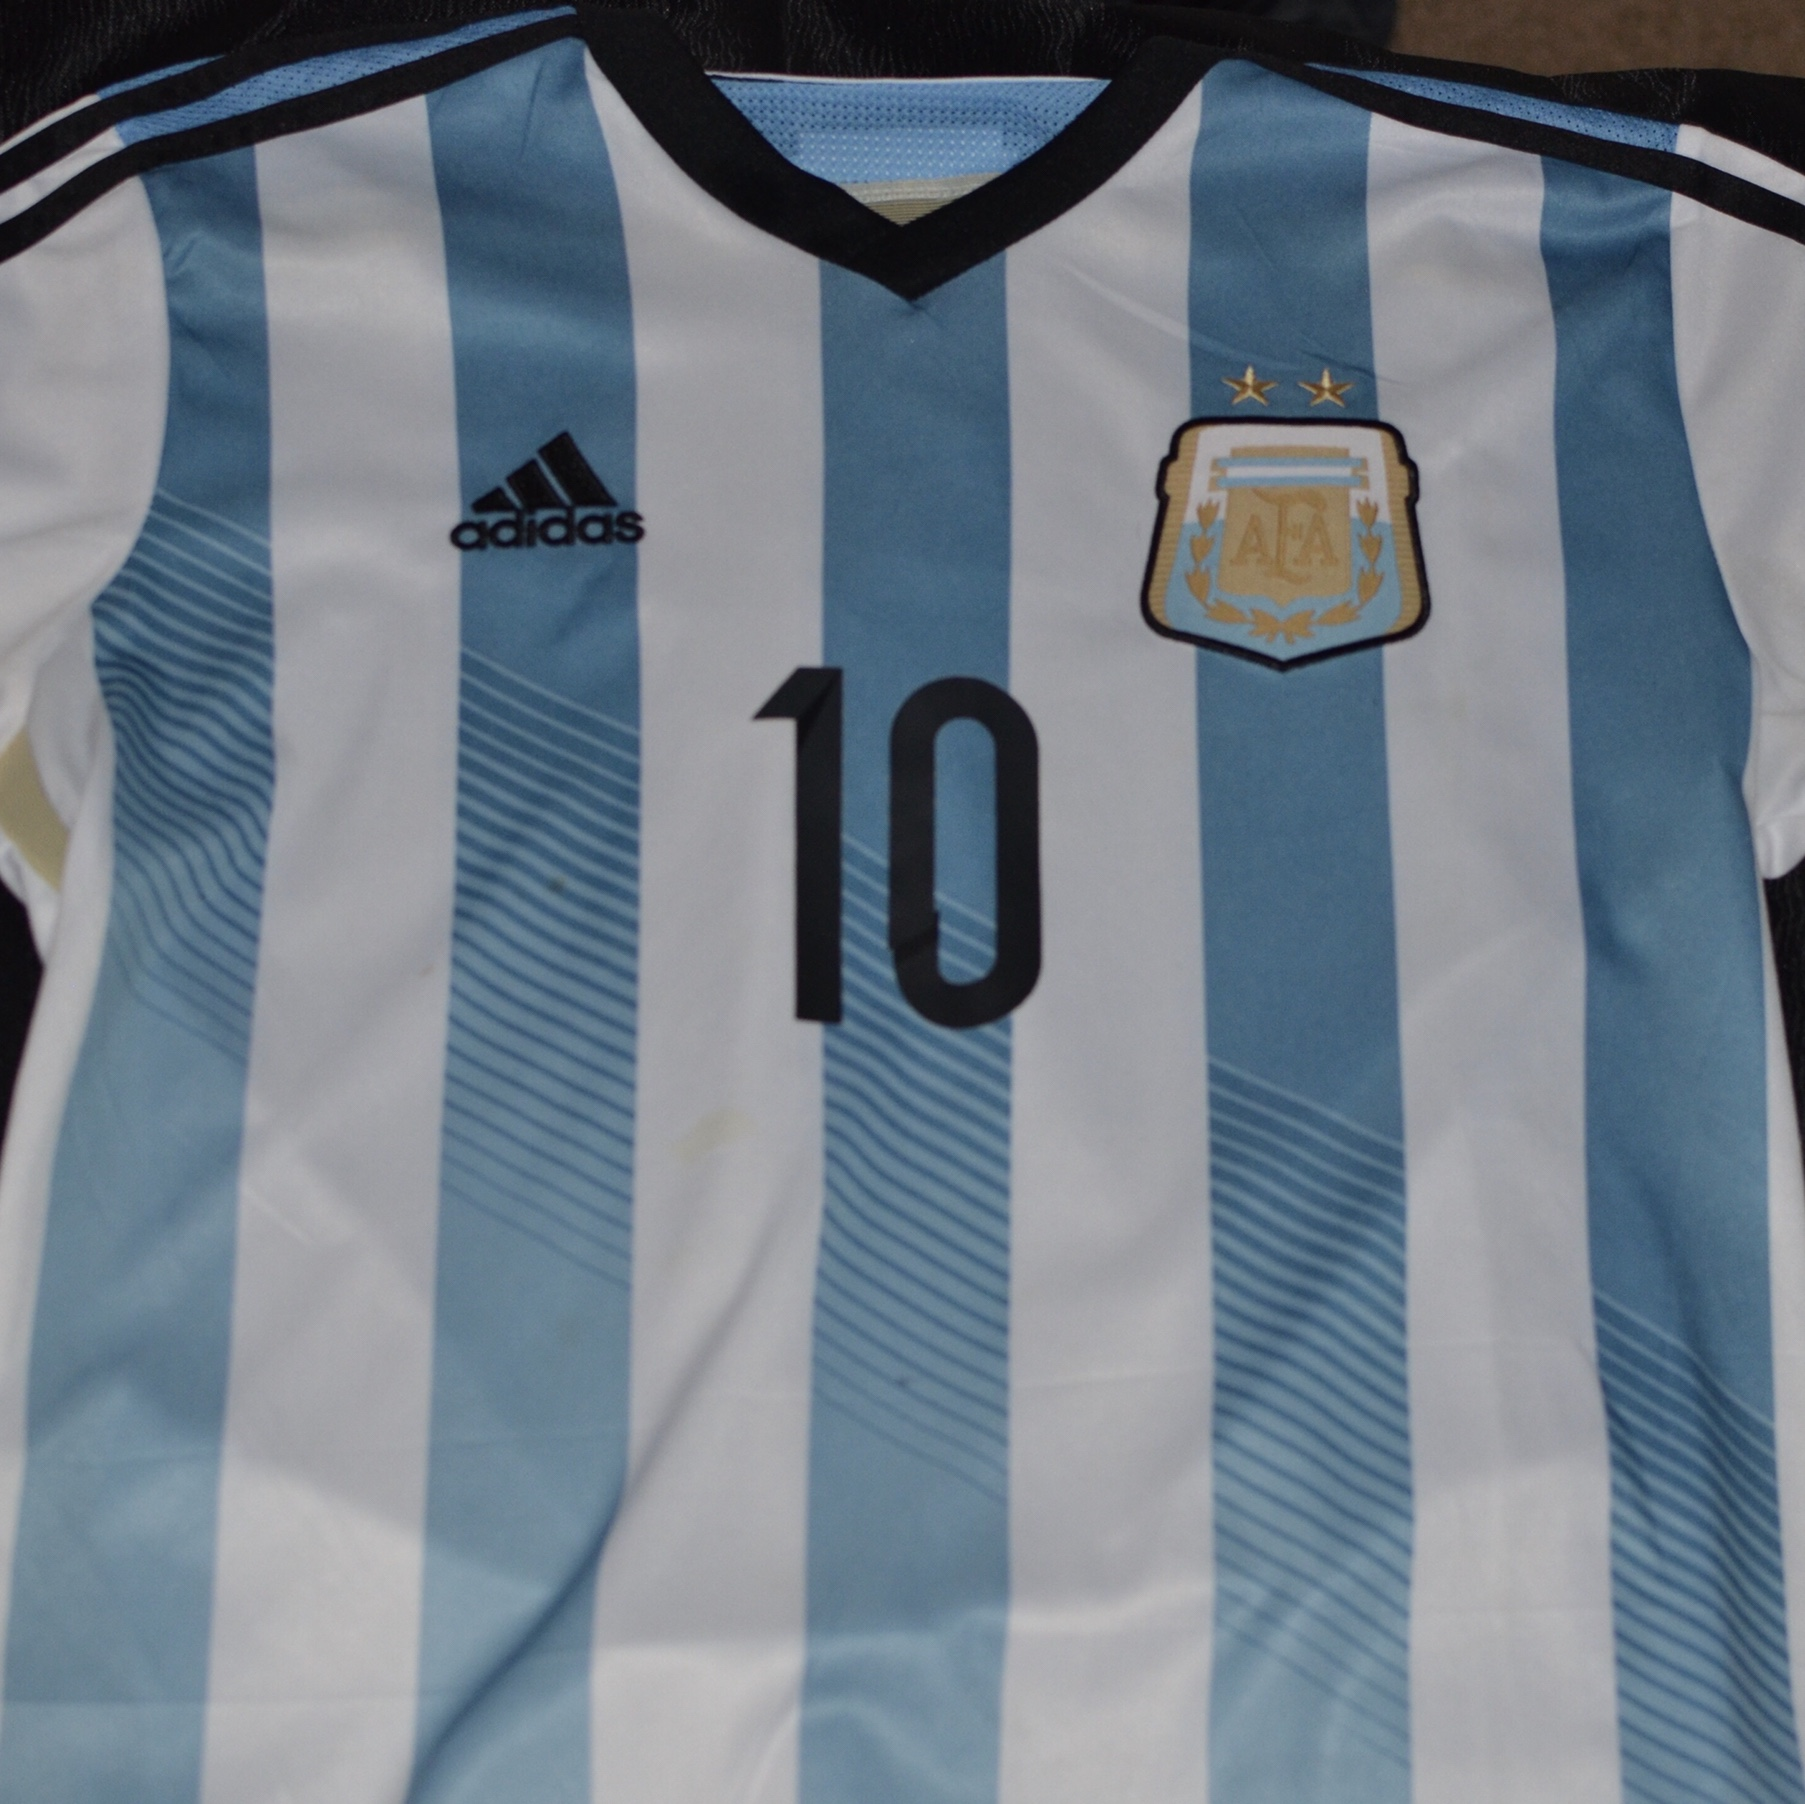 sneakers for cheap e1869 6c8f7 Adidas Lionel Messi #10 Argentina Jersey Medium fits... - Depop